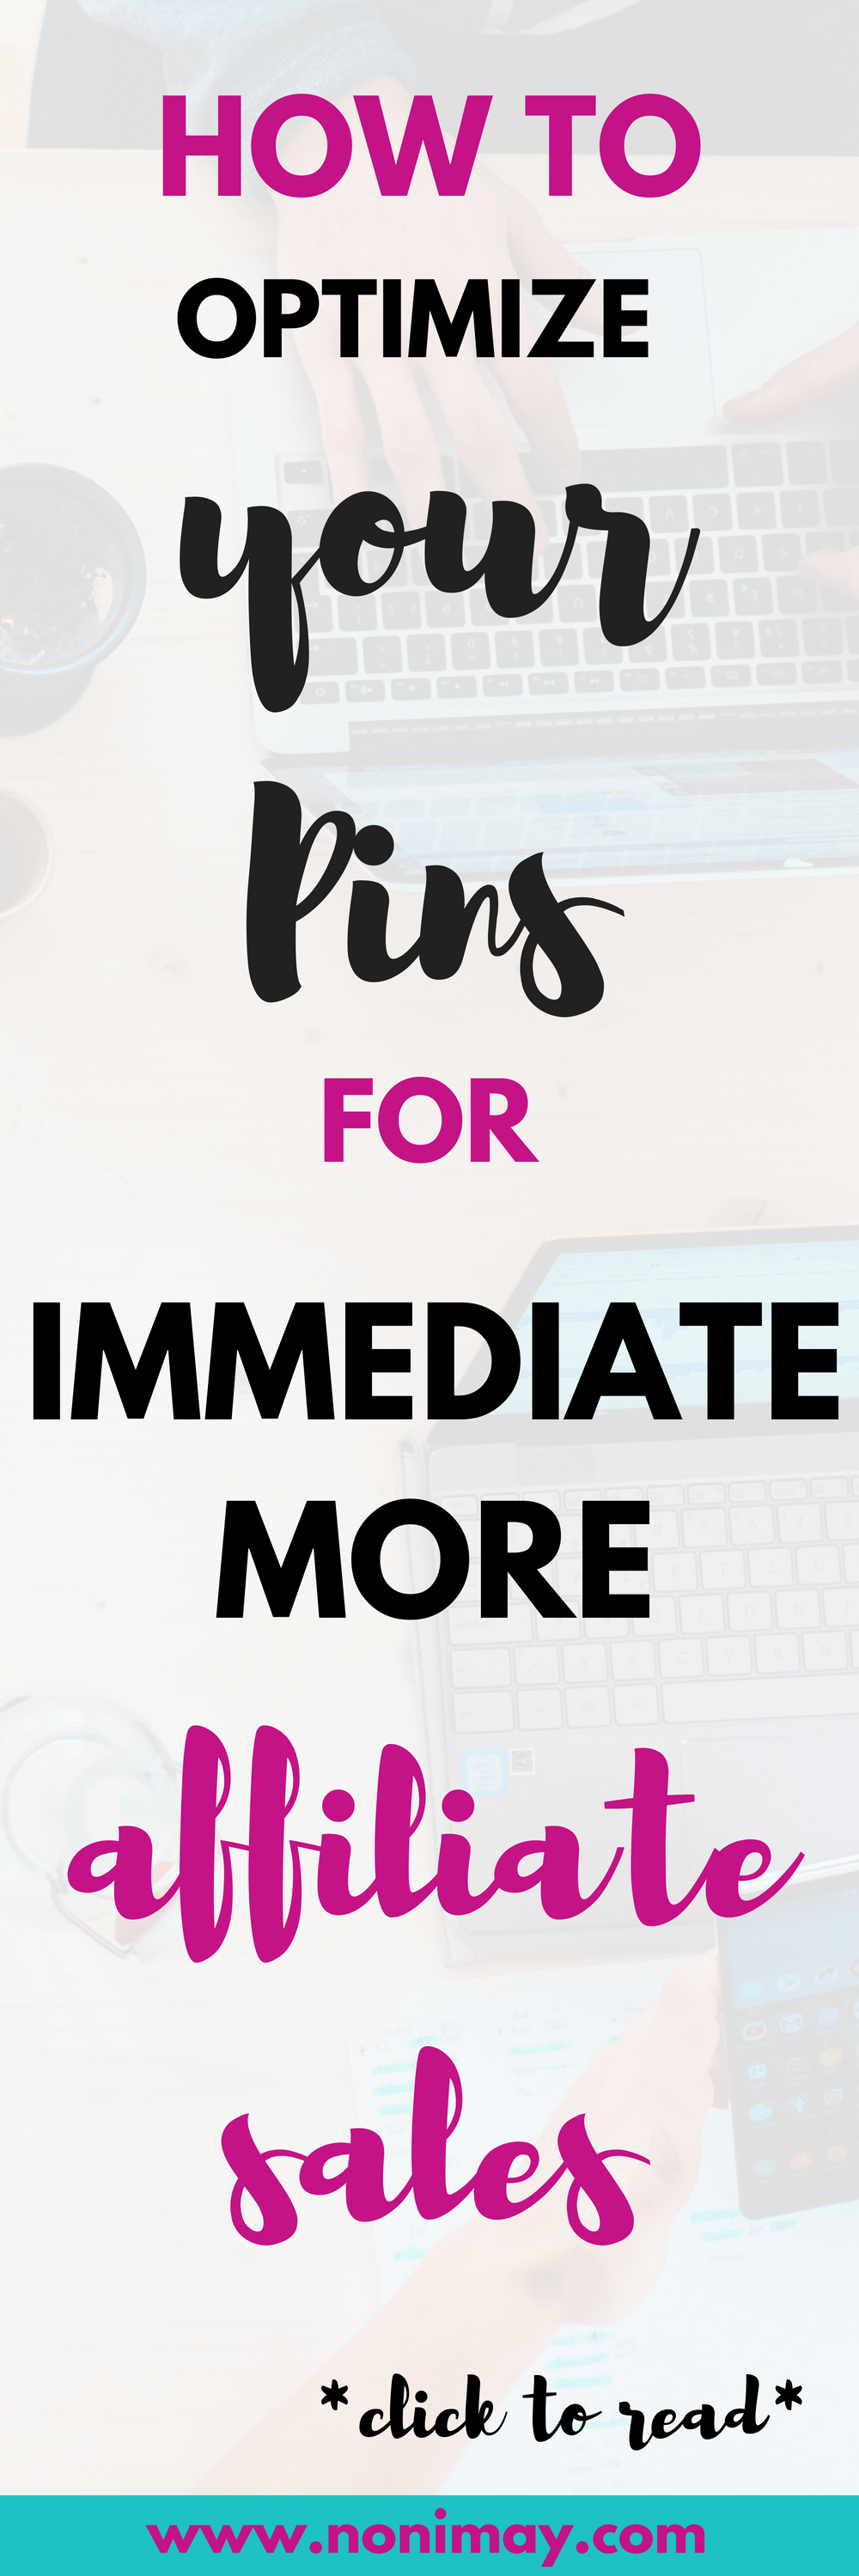 How to optimize your pinterest pins for immediate more affiliate sales